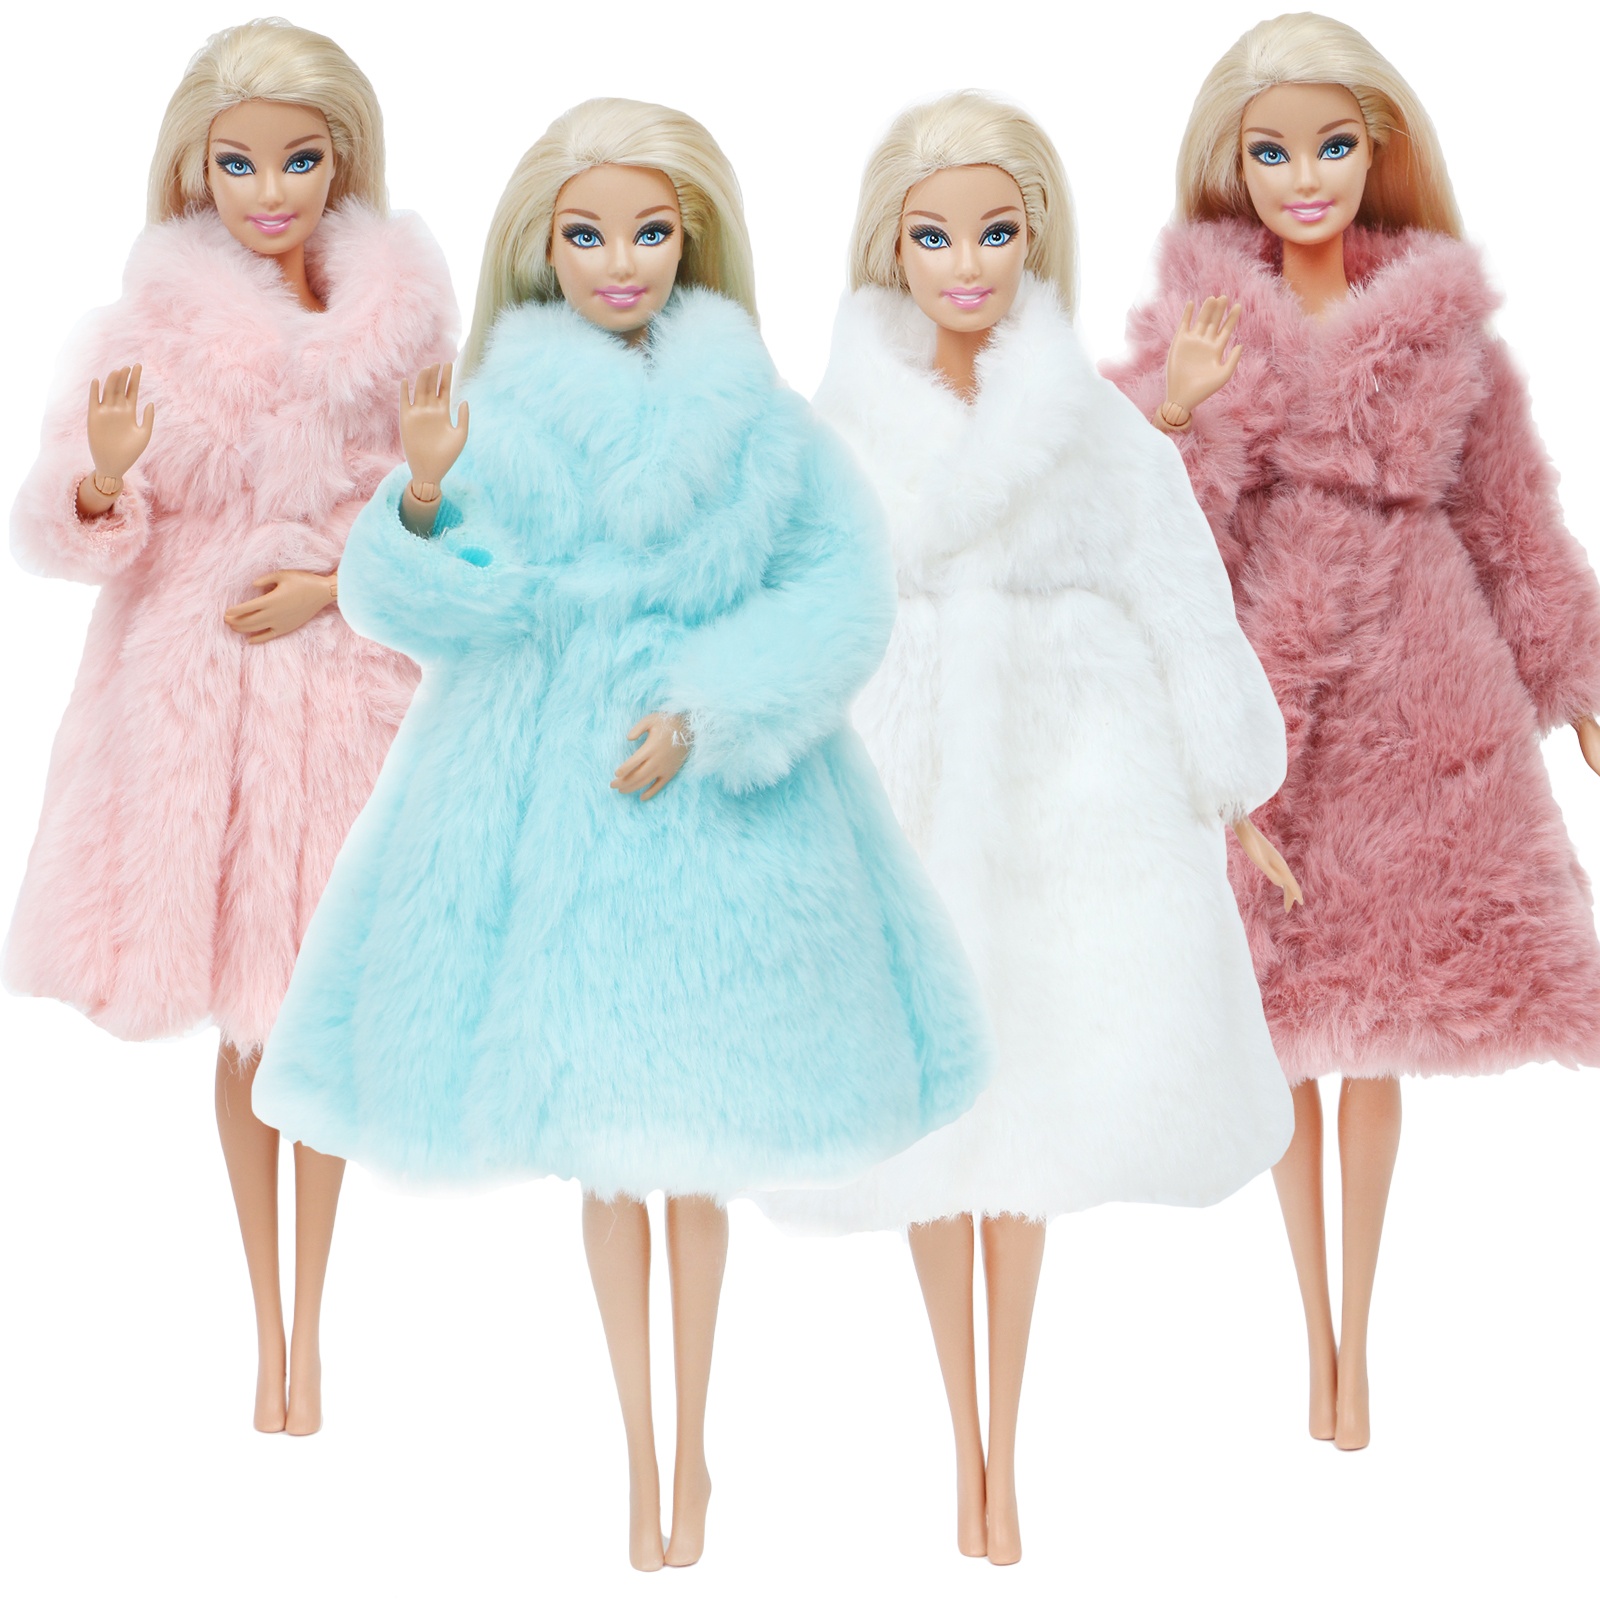 One Pcs Colourful Wool Coat High Quality Noble Winter Wear High Quality Fashion Dress Accessories Clothes For Barbie Doll Toy